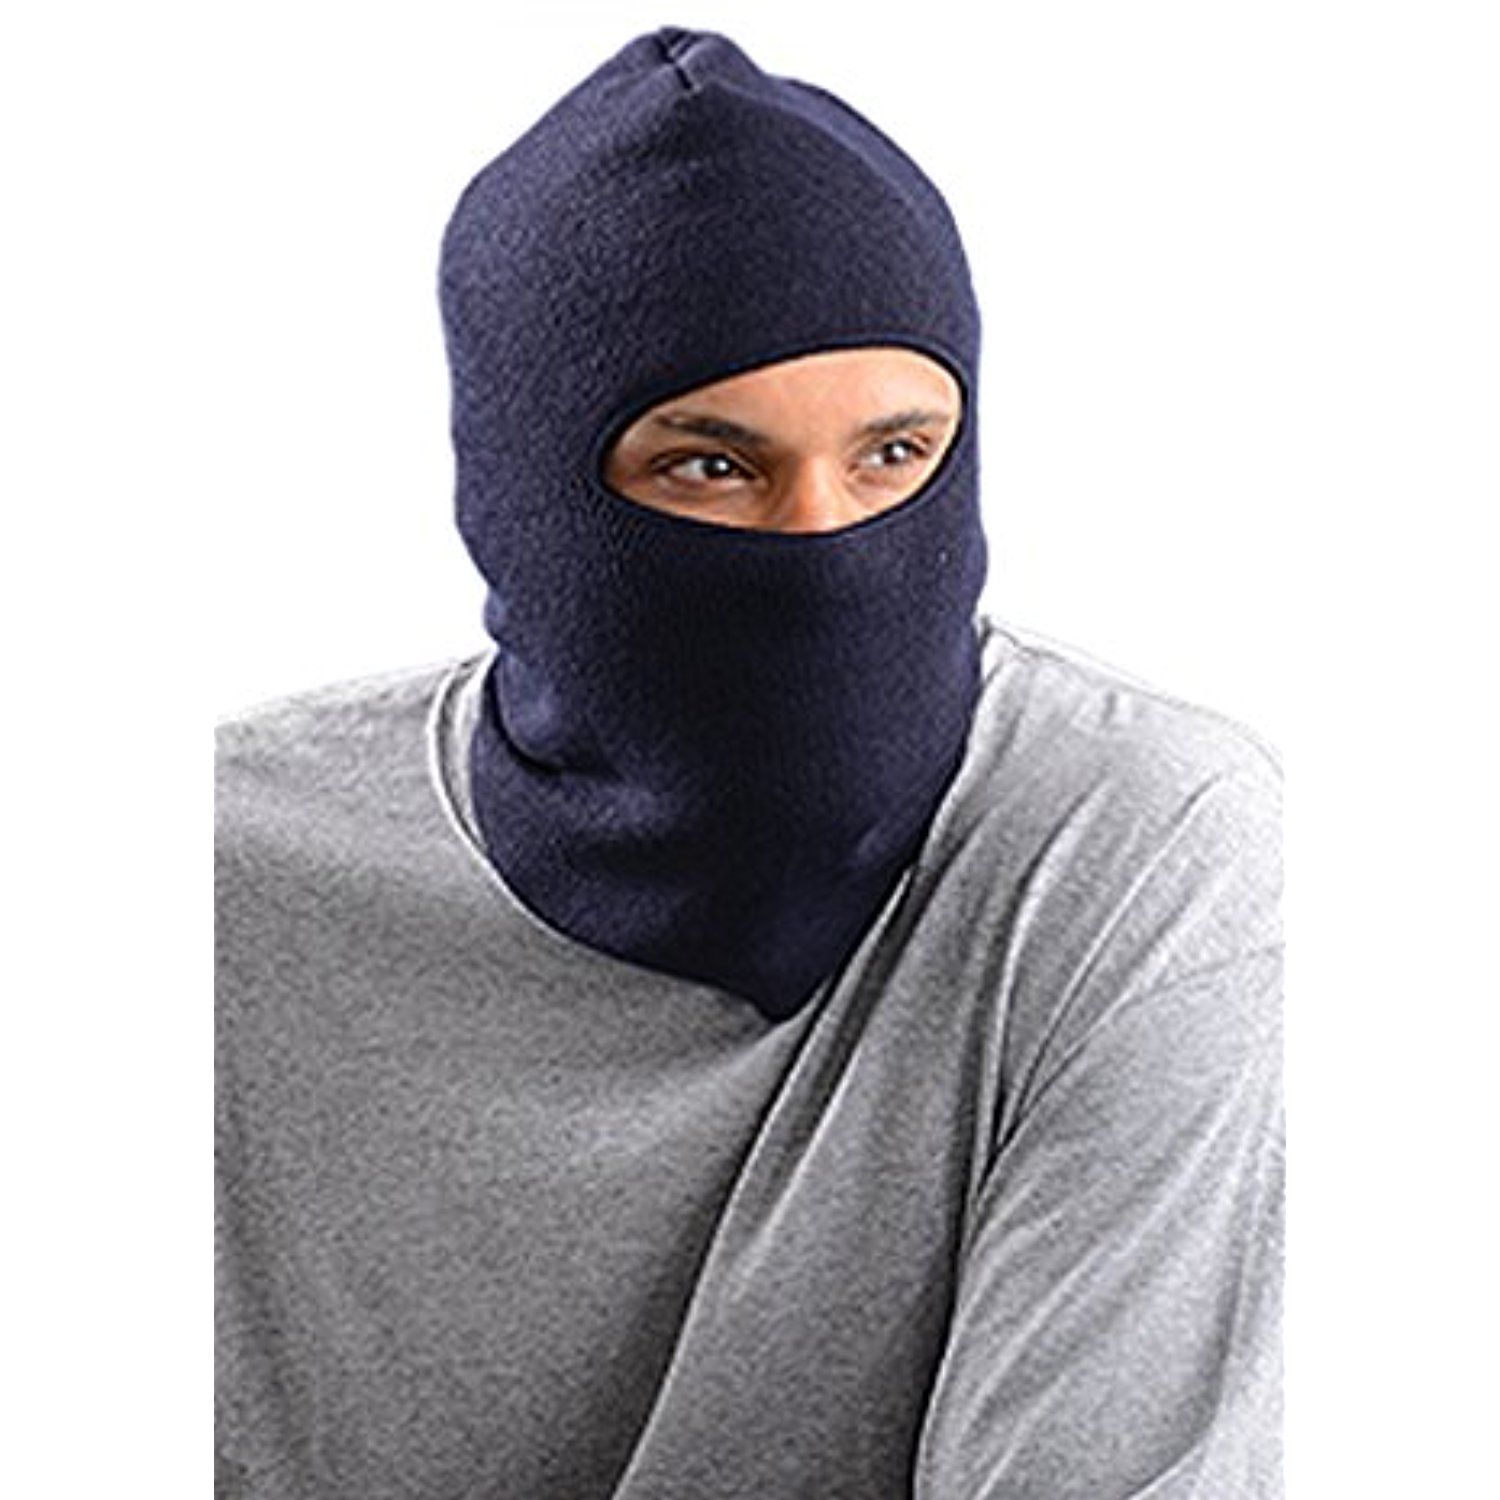 Stay Warm Lined Insulated Face Mask Navy Made In The Usa